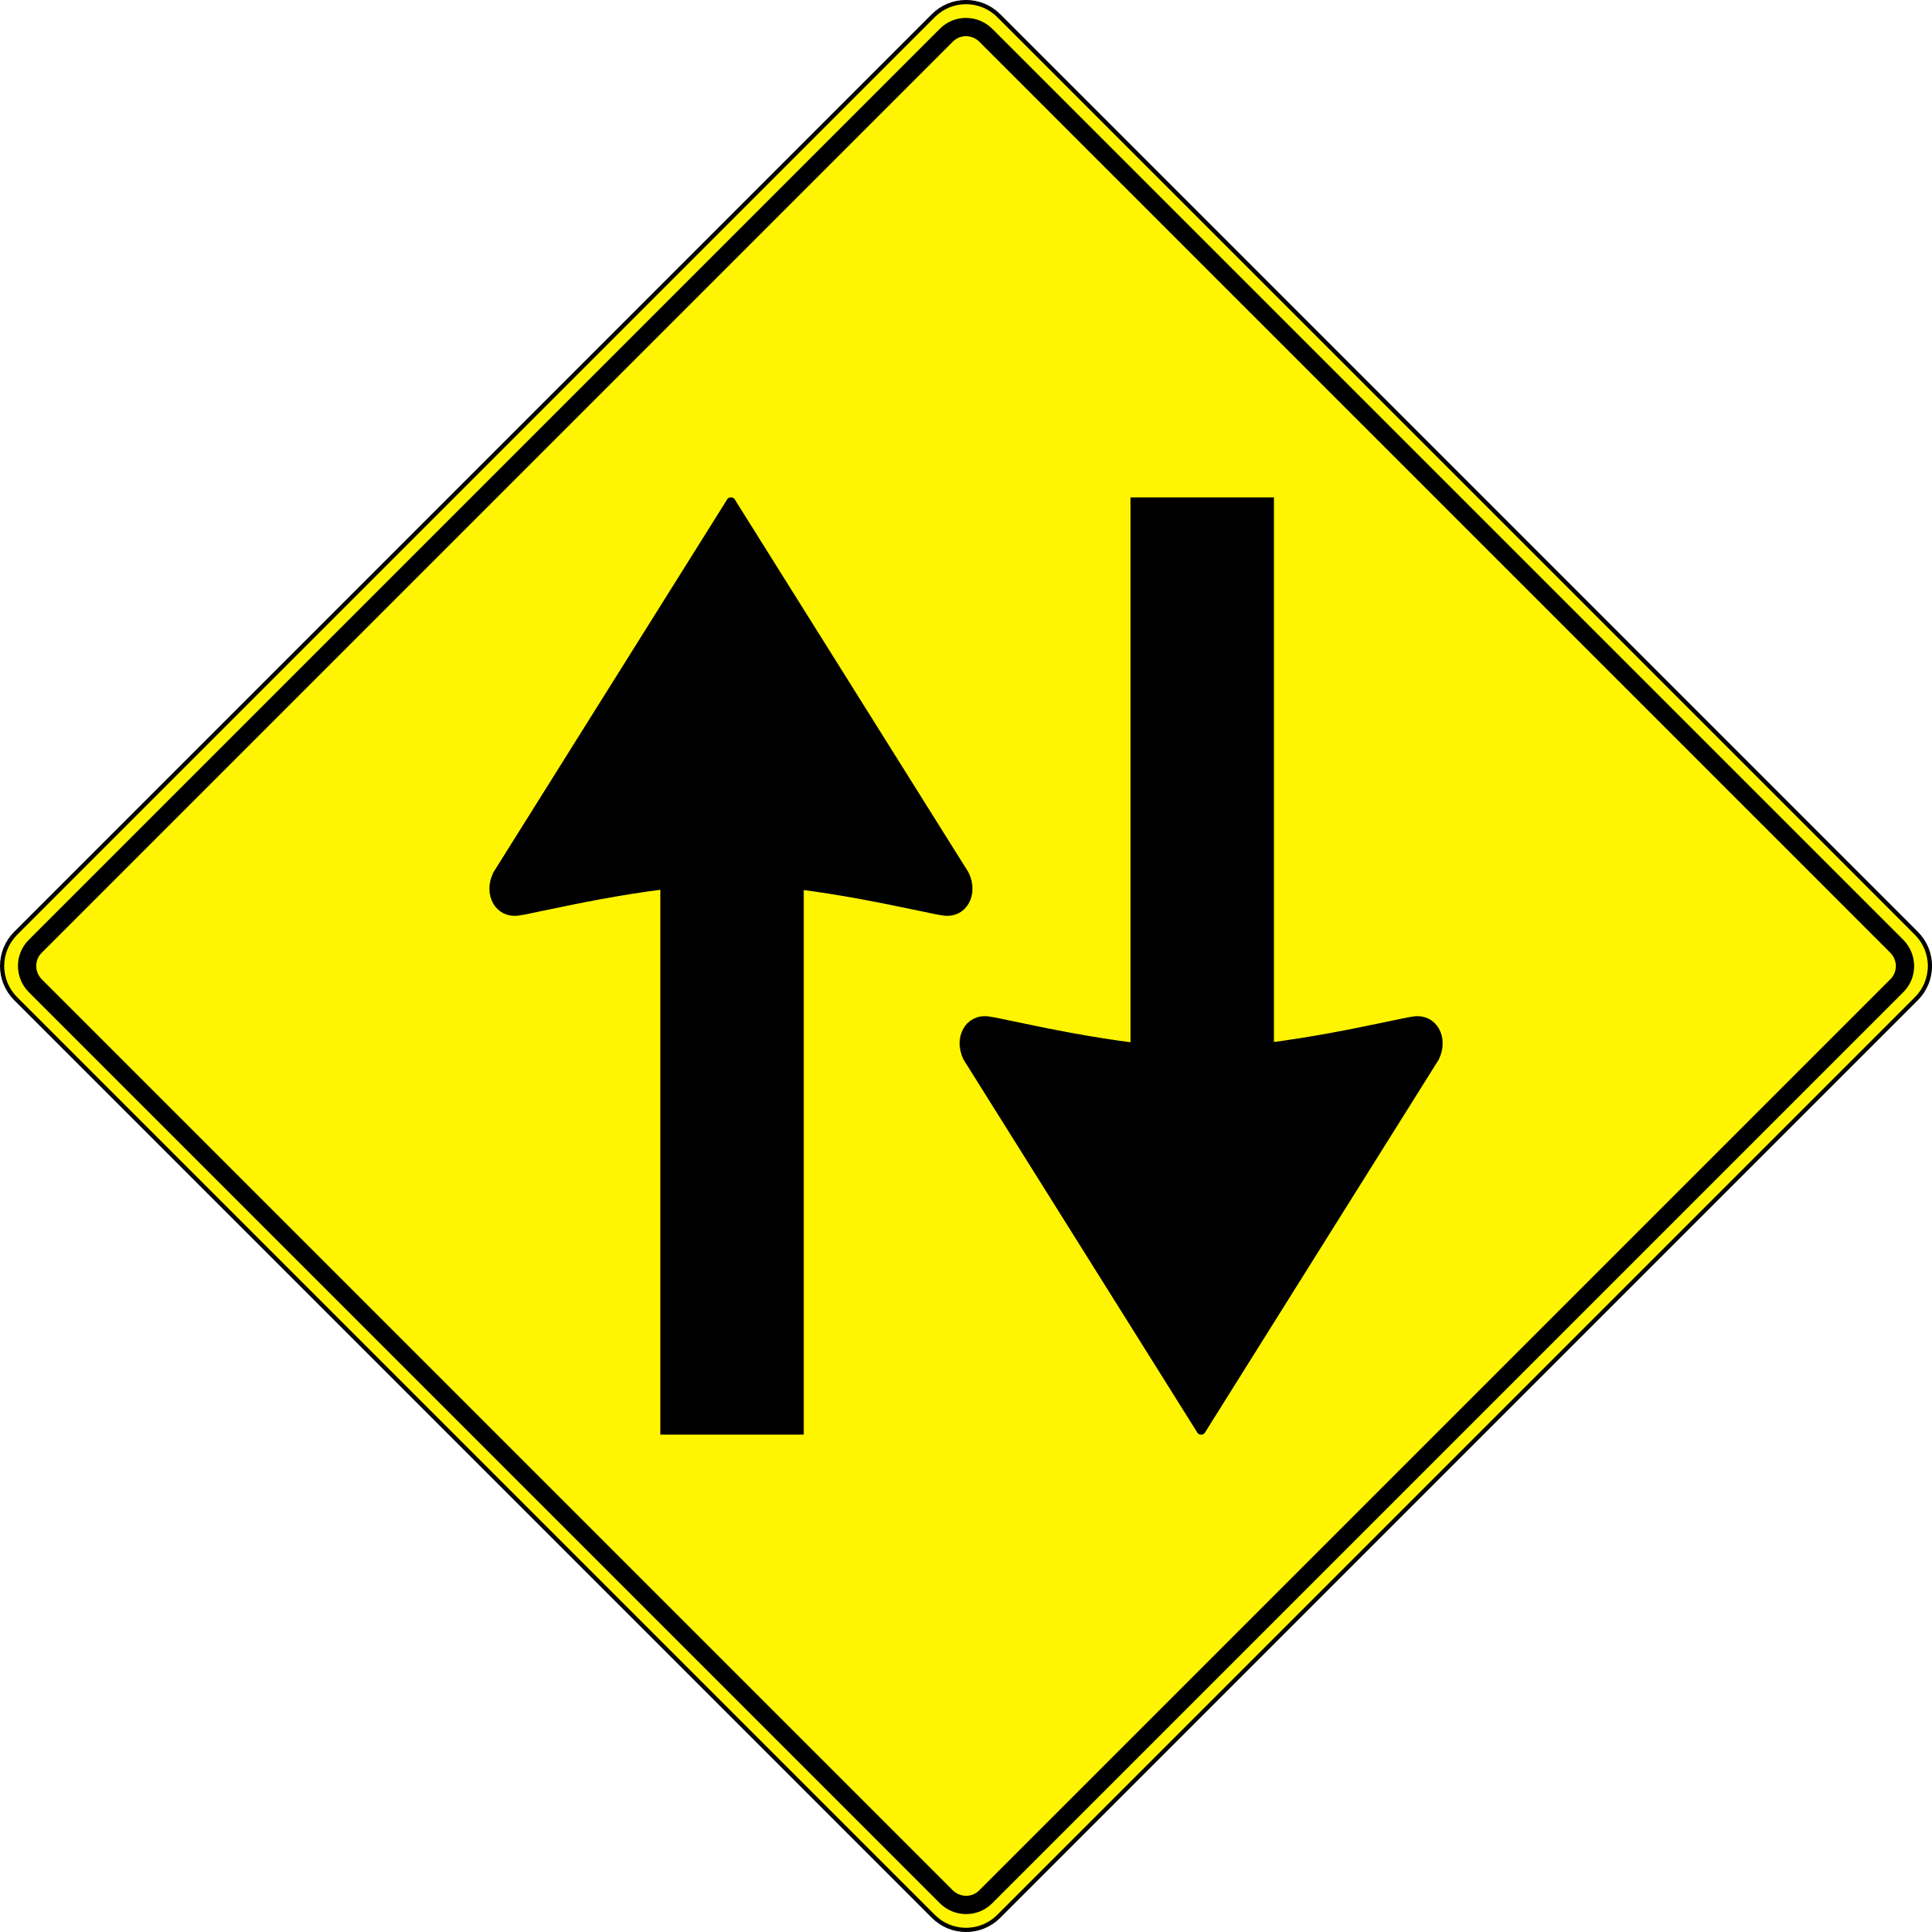 yellow road sign - two way traffic by paulprogrammer